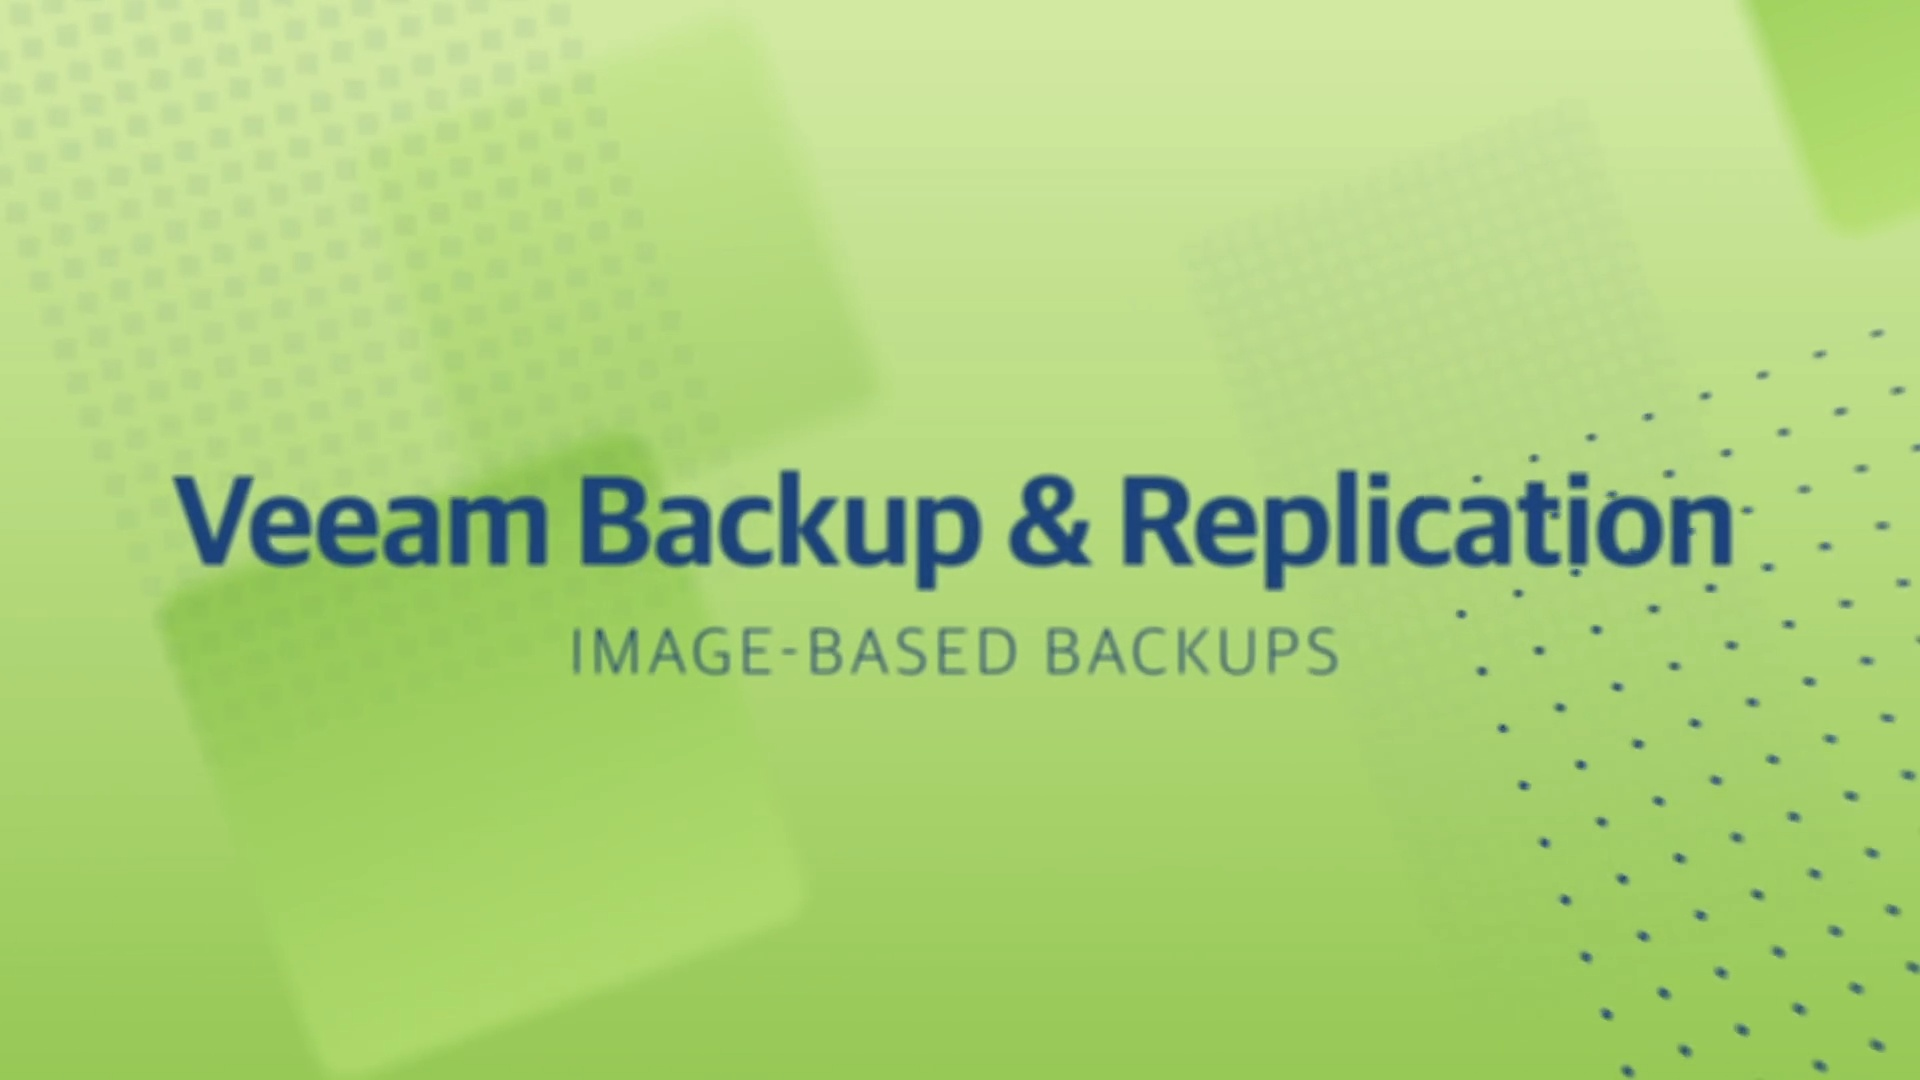 Product launch v11 - VBR - Image-Based Backups